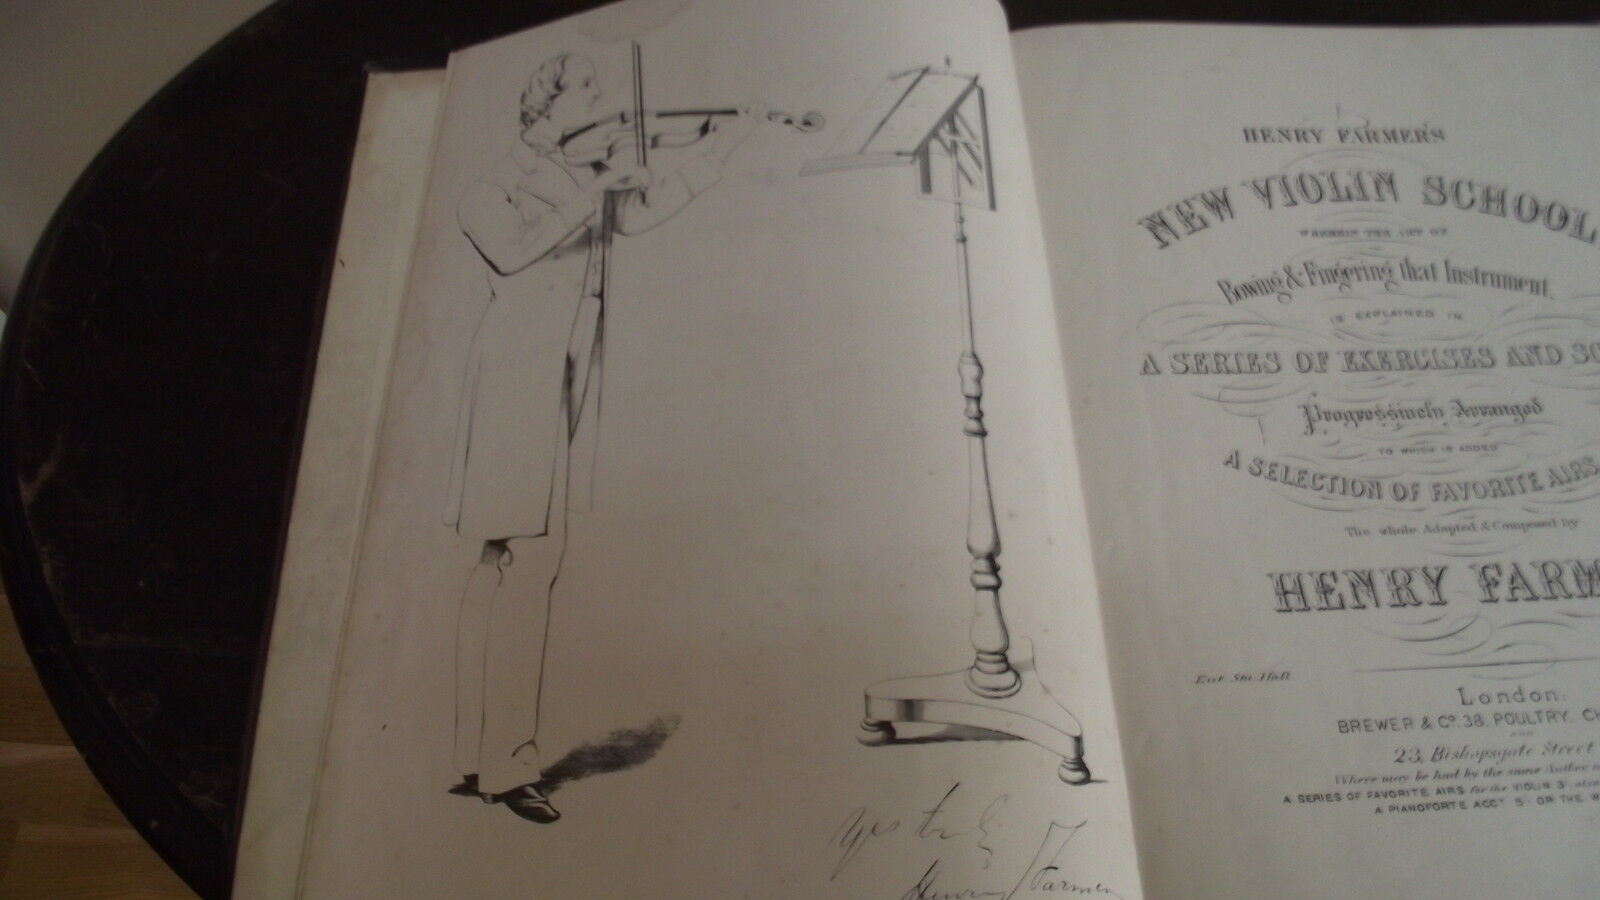 Henry farmers new violin school .victorian book  (large illustration of author )